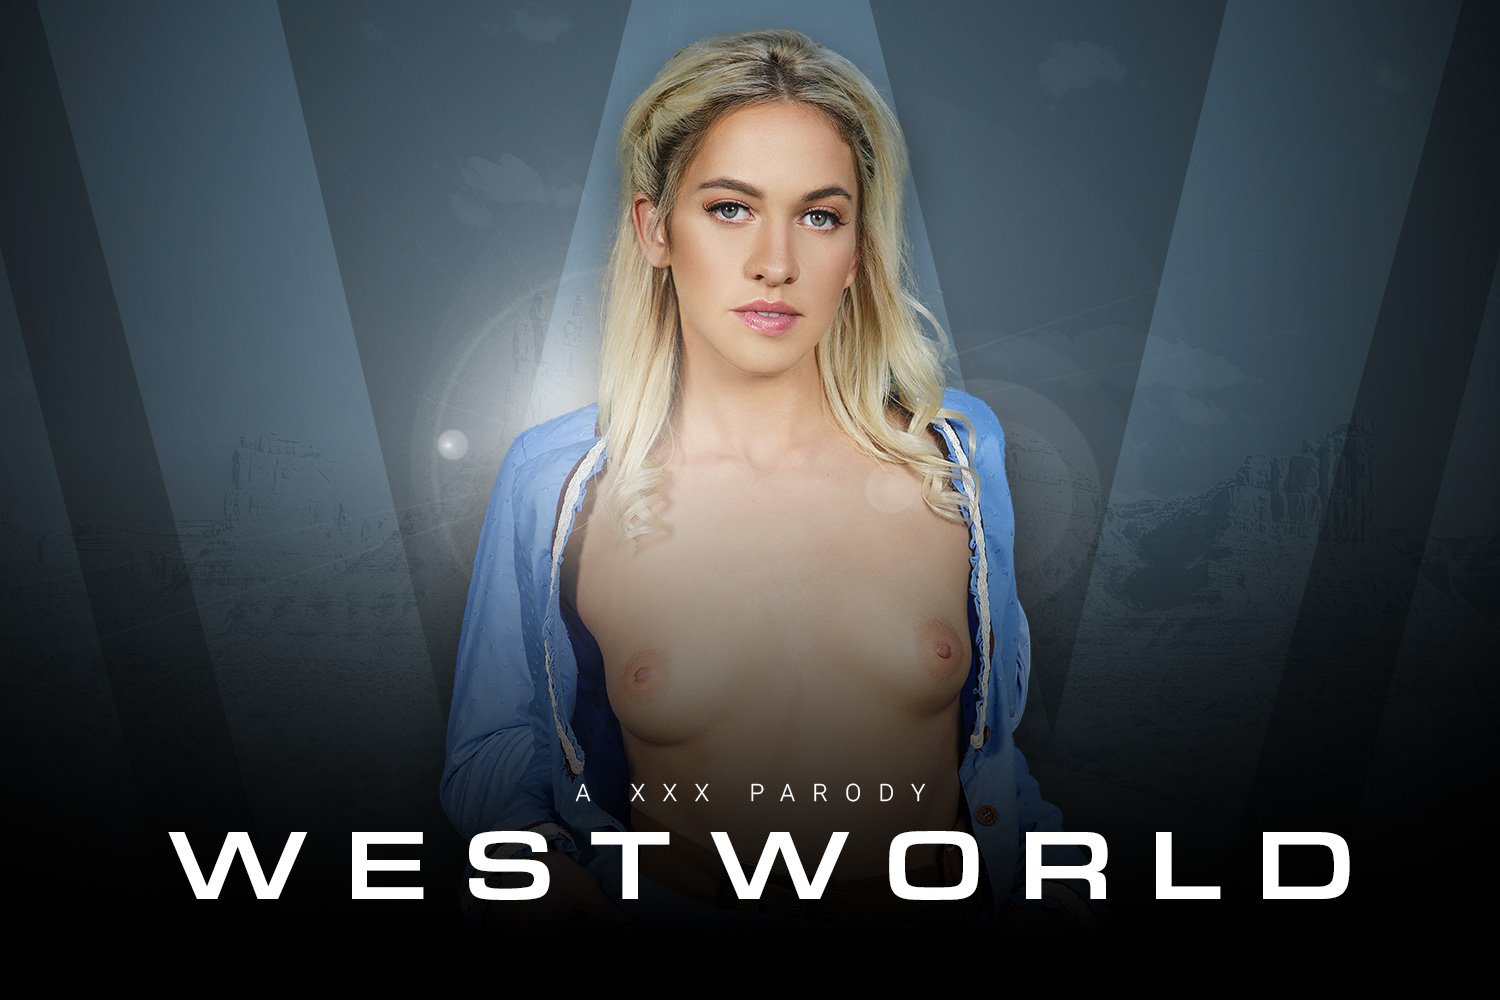 Westworld A XXX Parody VR Porn Video